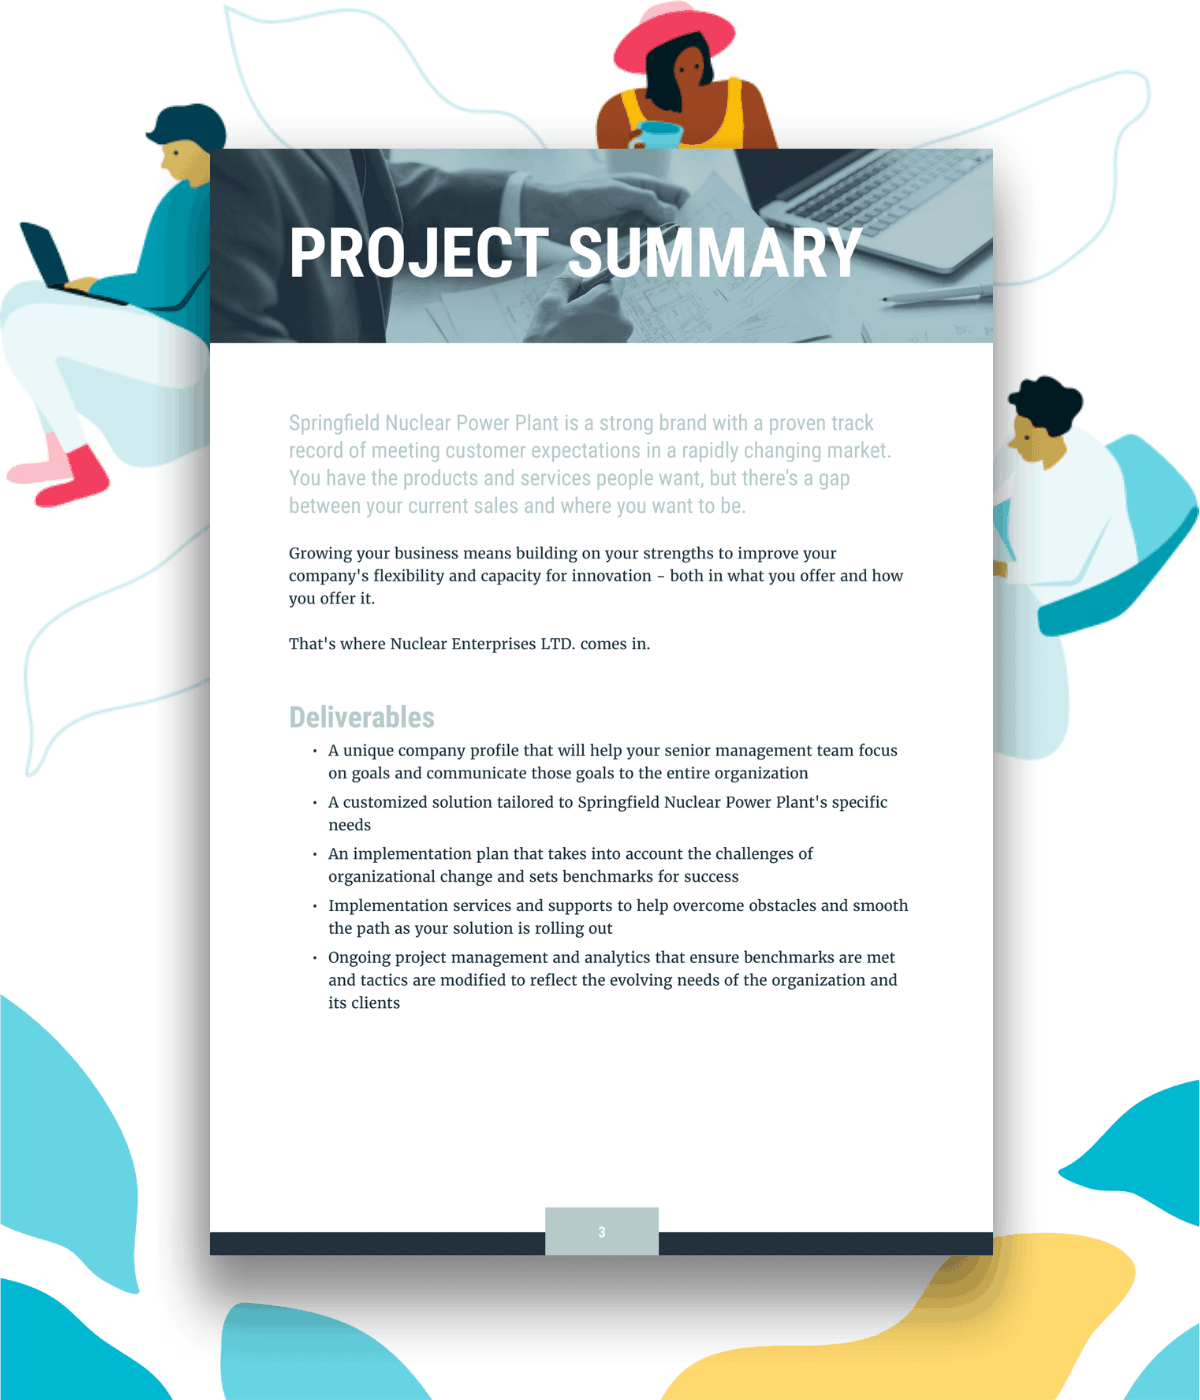 Project summary or project deliverables and timeline section of an example consulting proposal template.